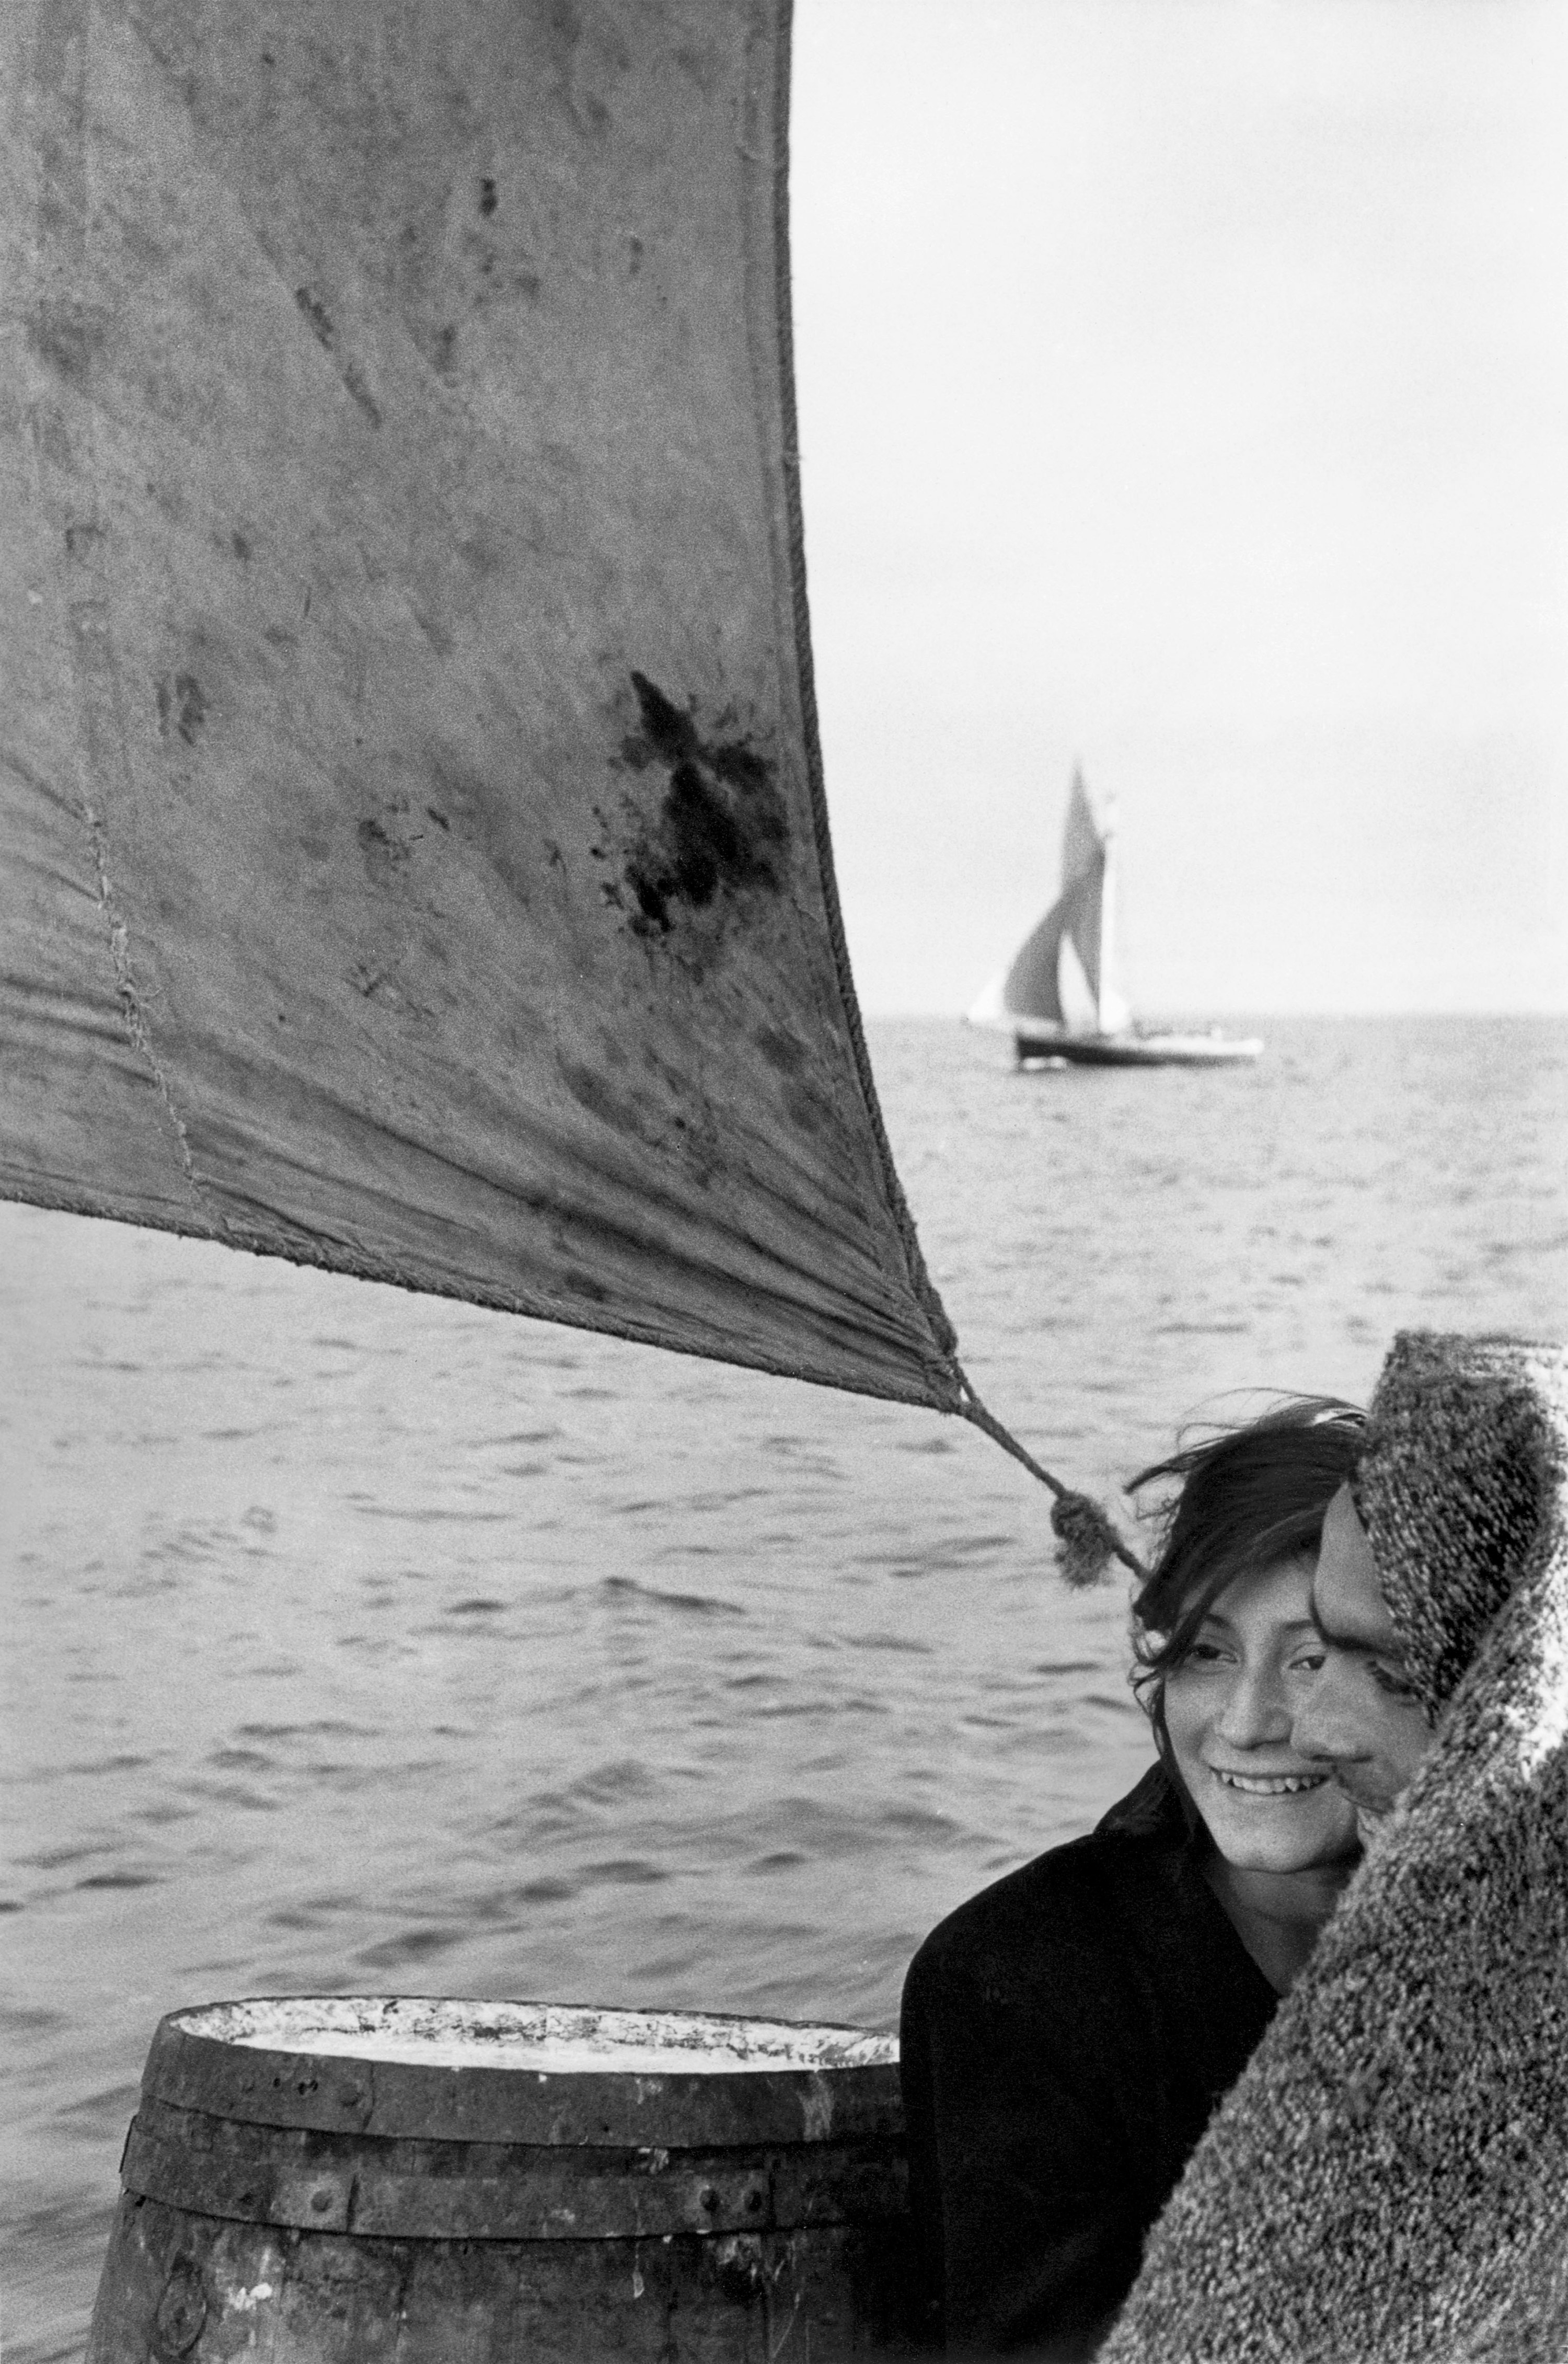 A young couple on a boat, with a sail above them and the woman smiling